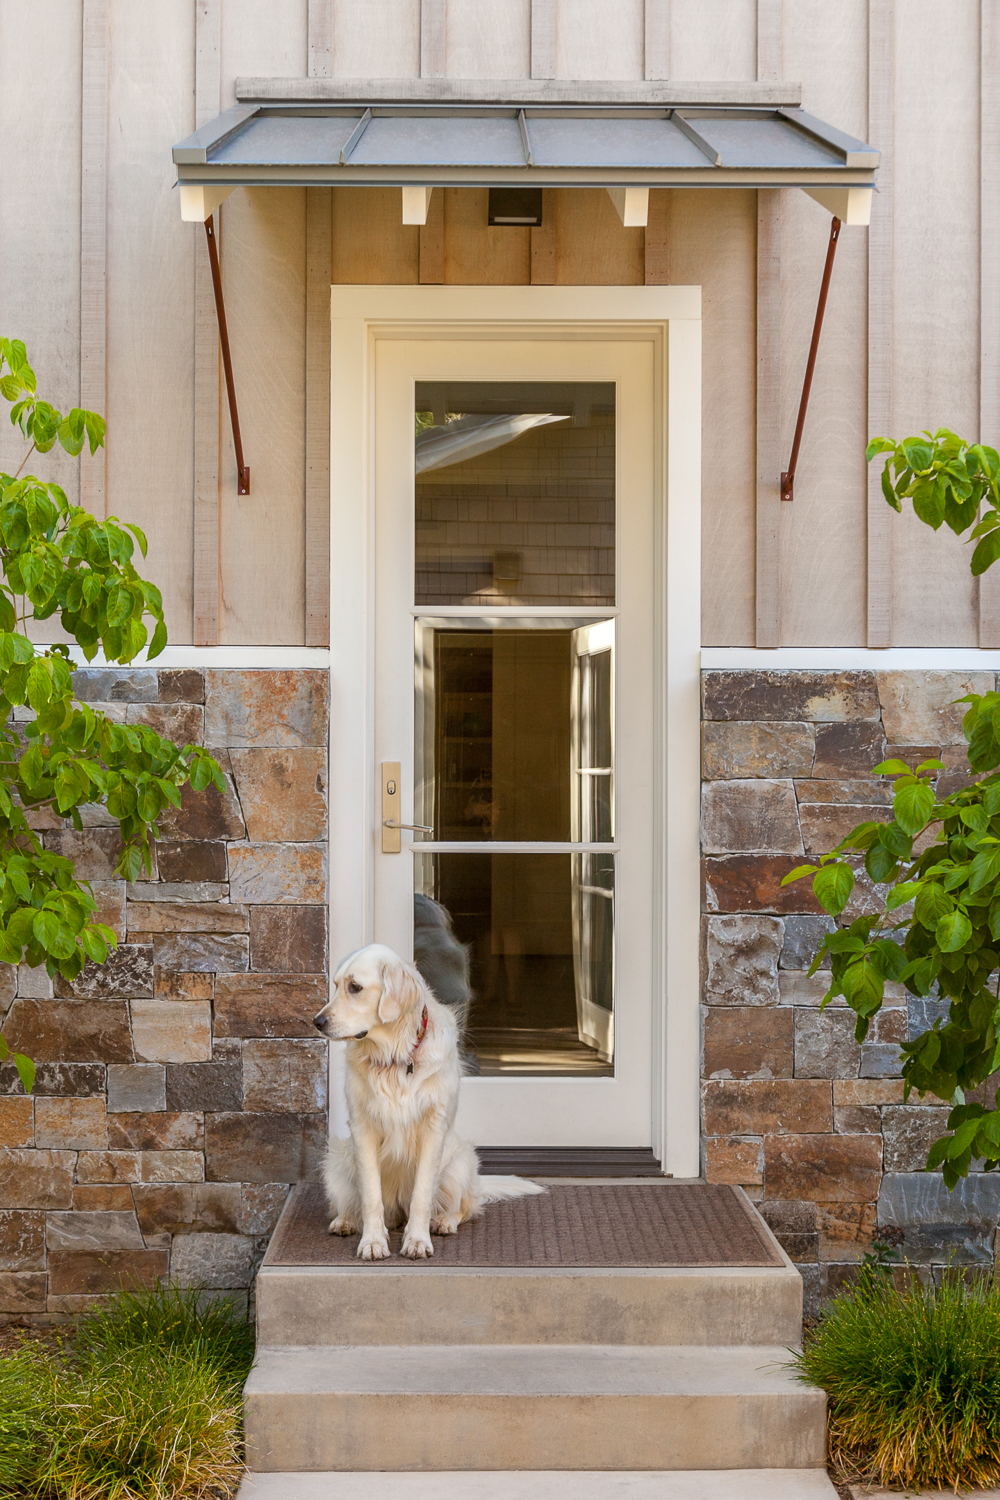 Starry in her Atherton garden at the backdoor. - Arterra Landscape architecture